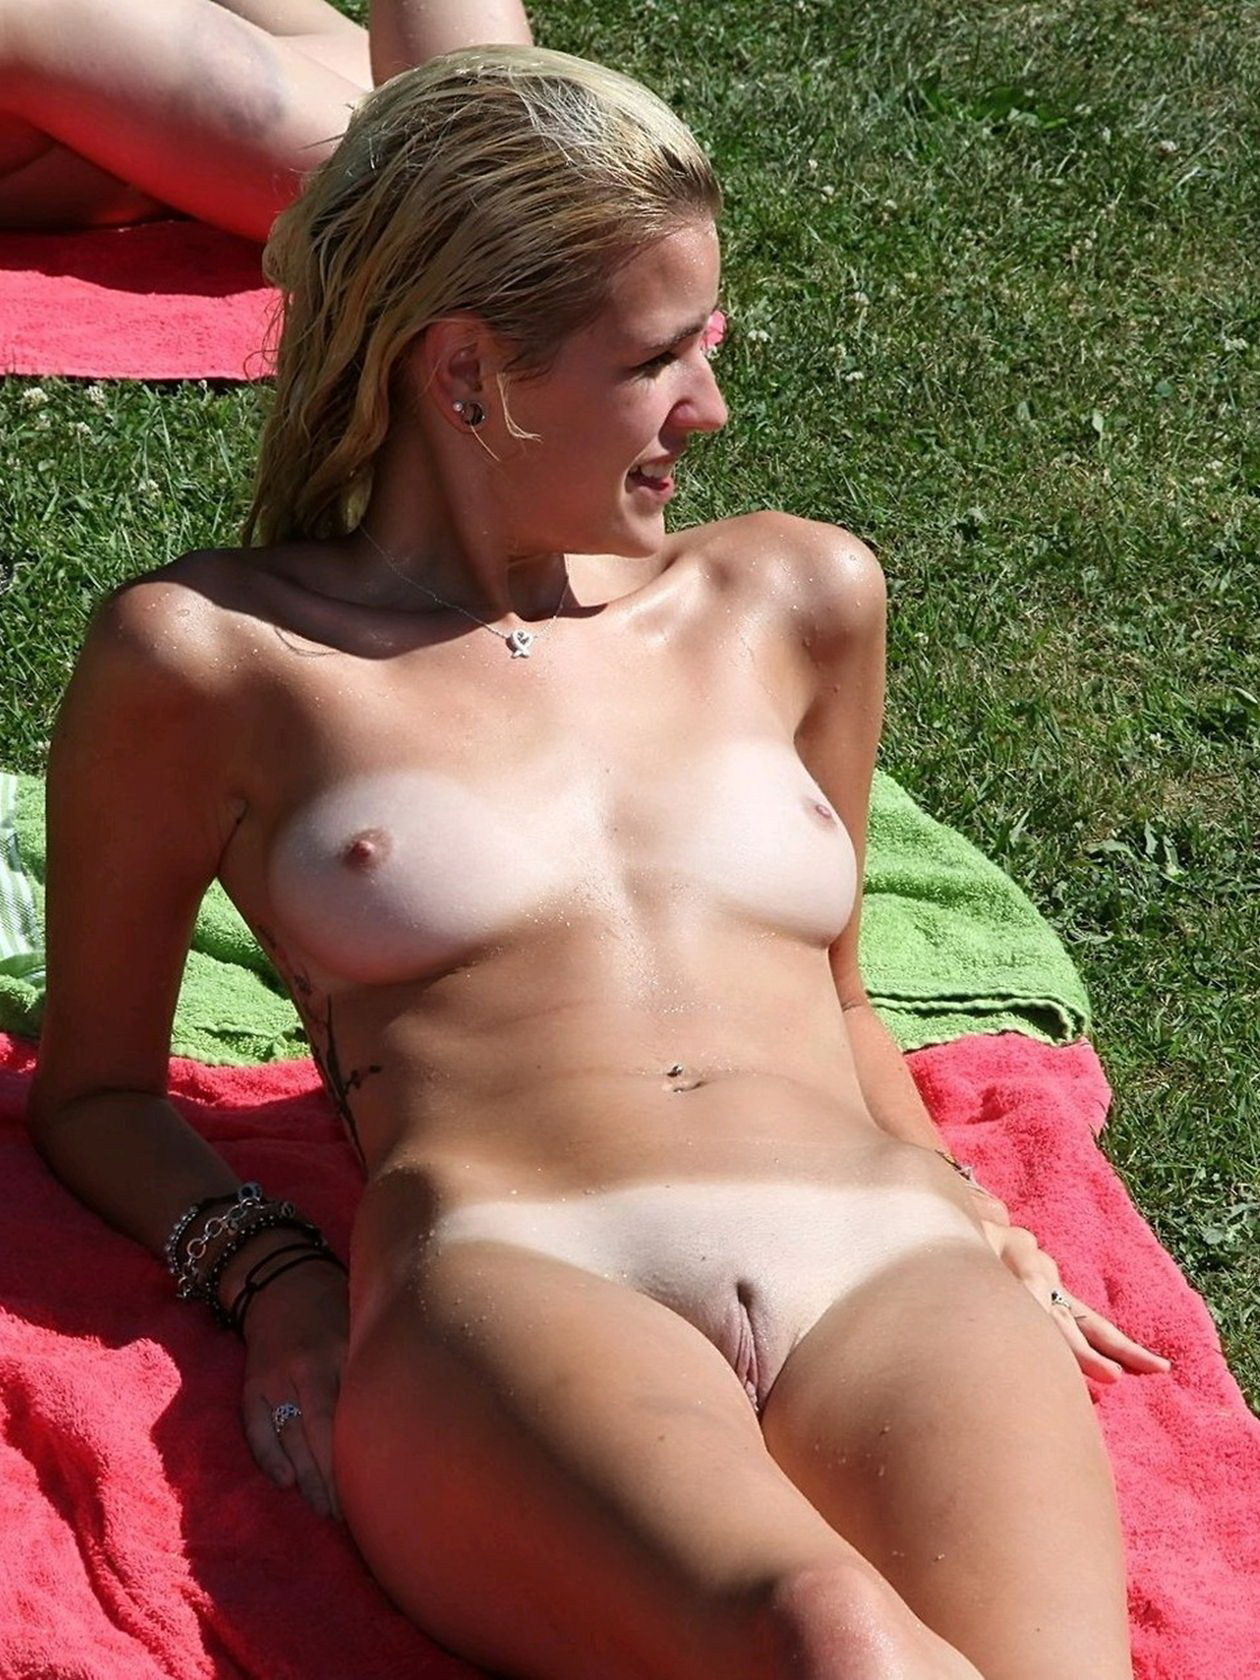 Teen girls on nude beach